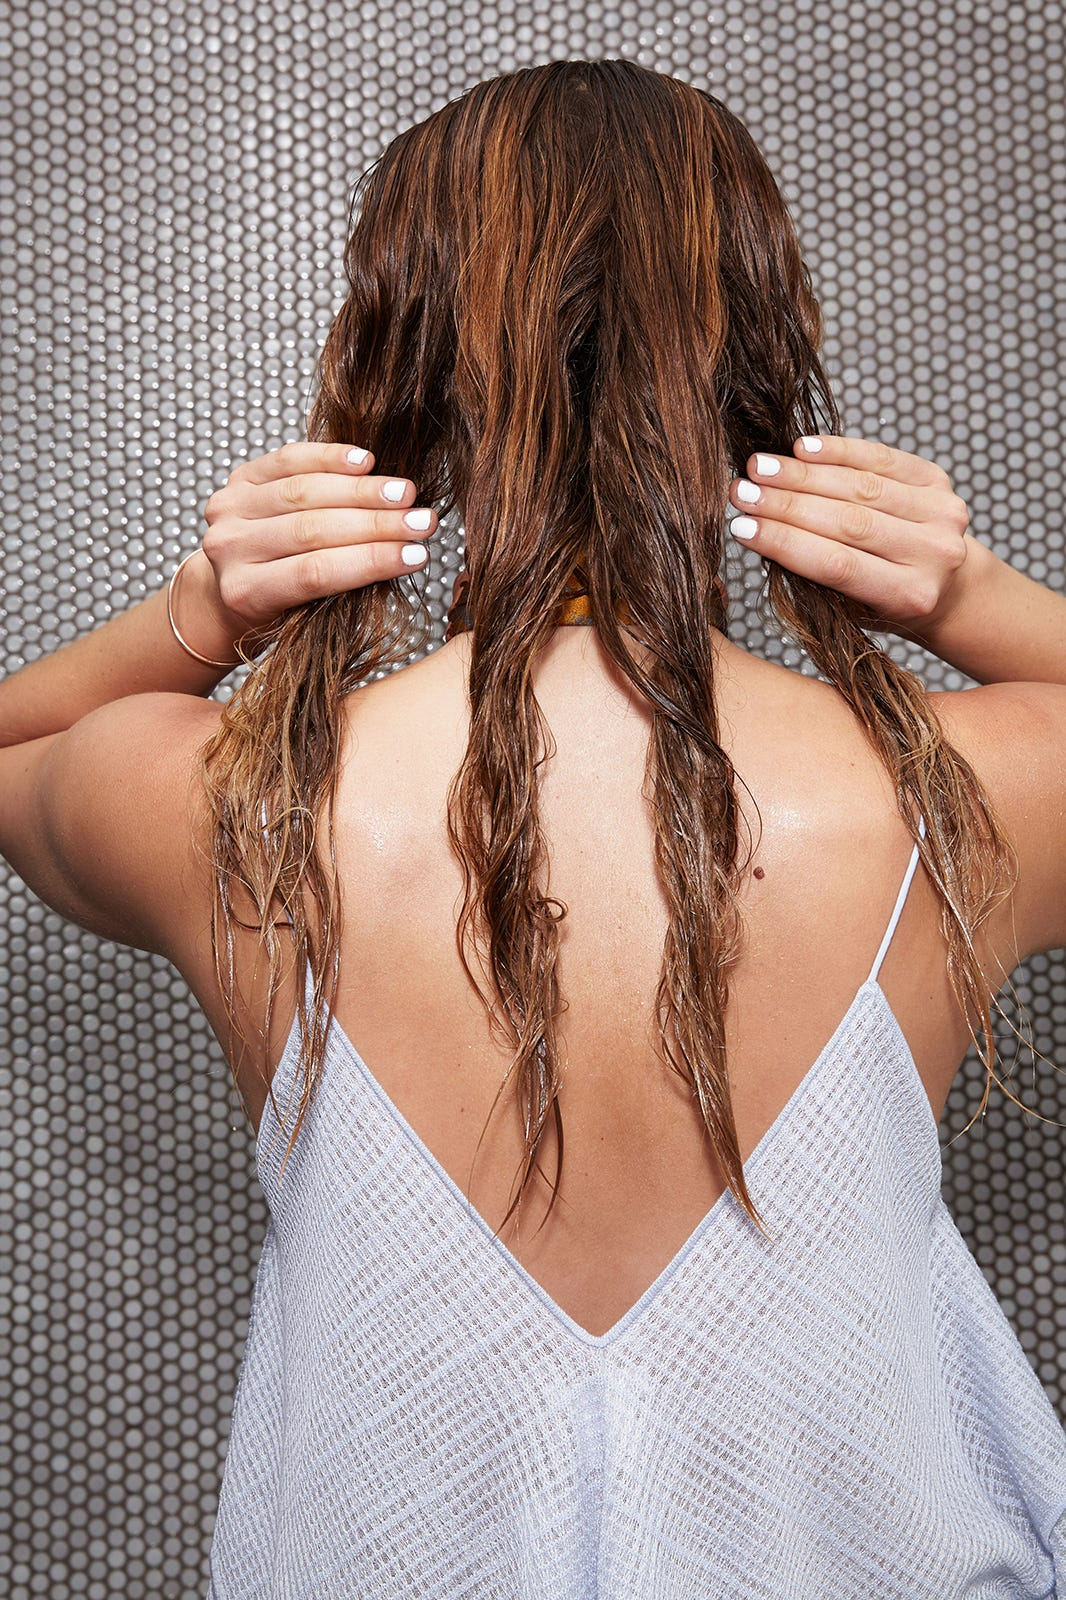 How To Style Hair Without Heat - Wet Hairdos For Summer